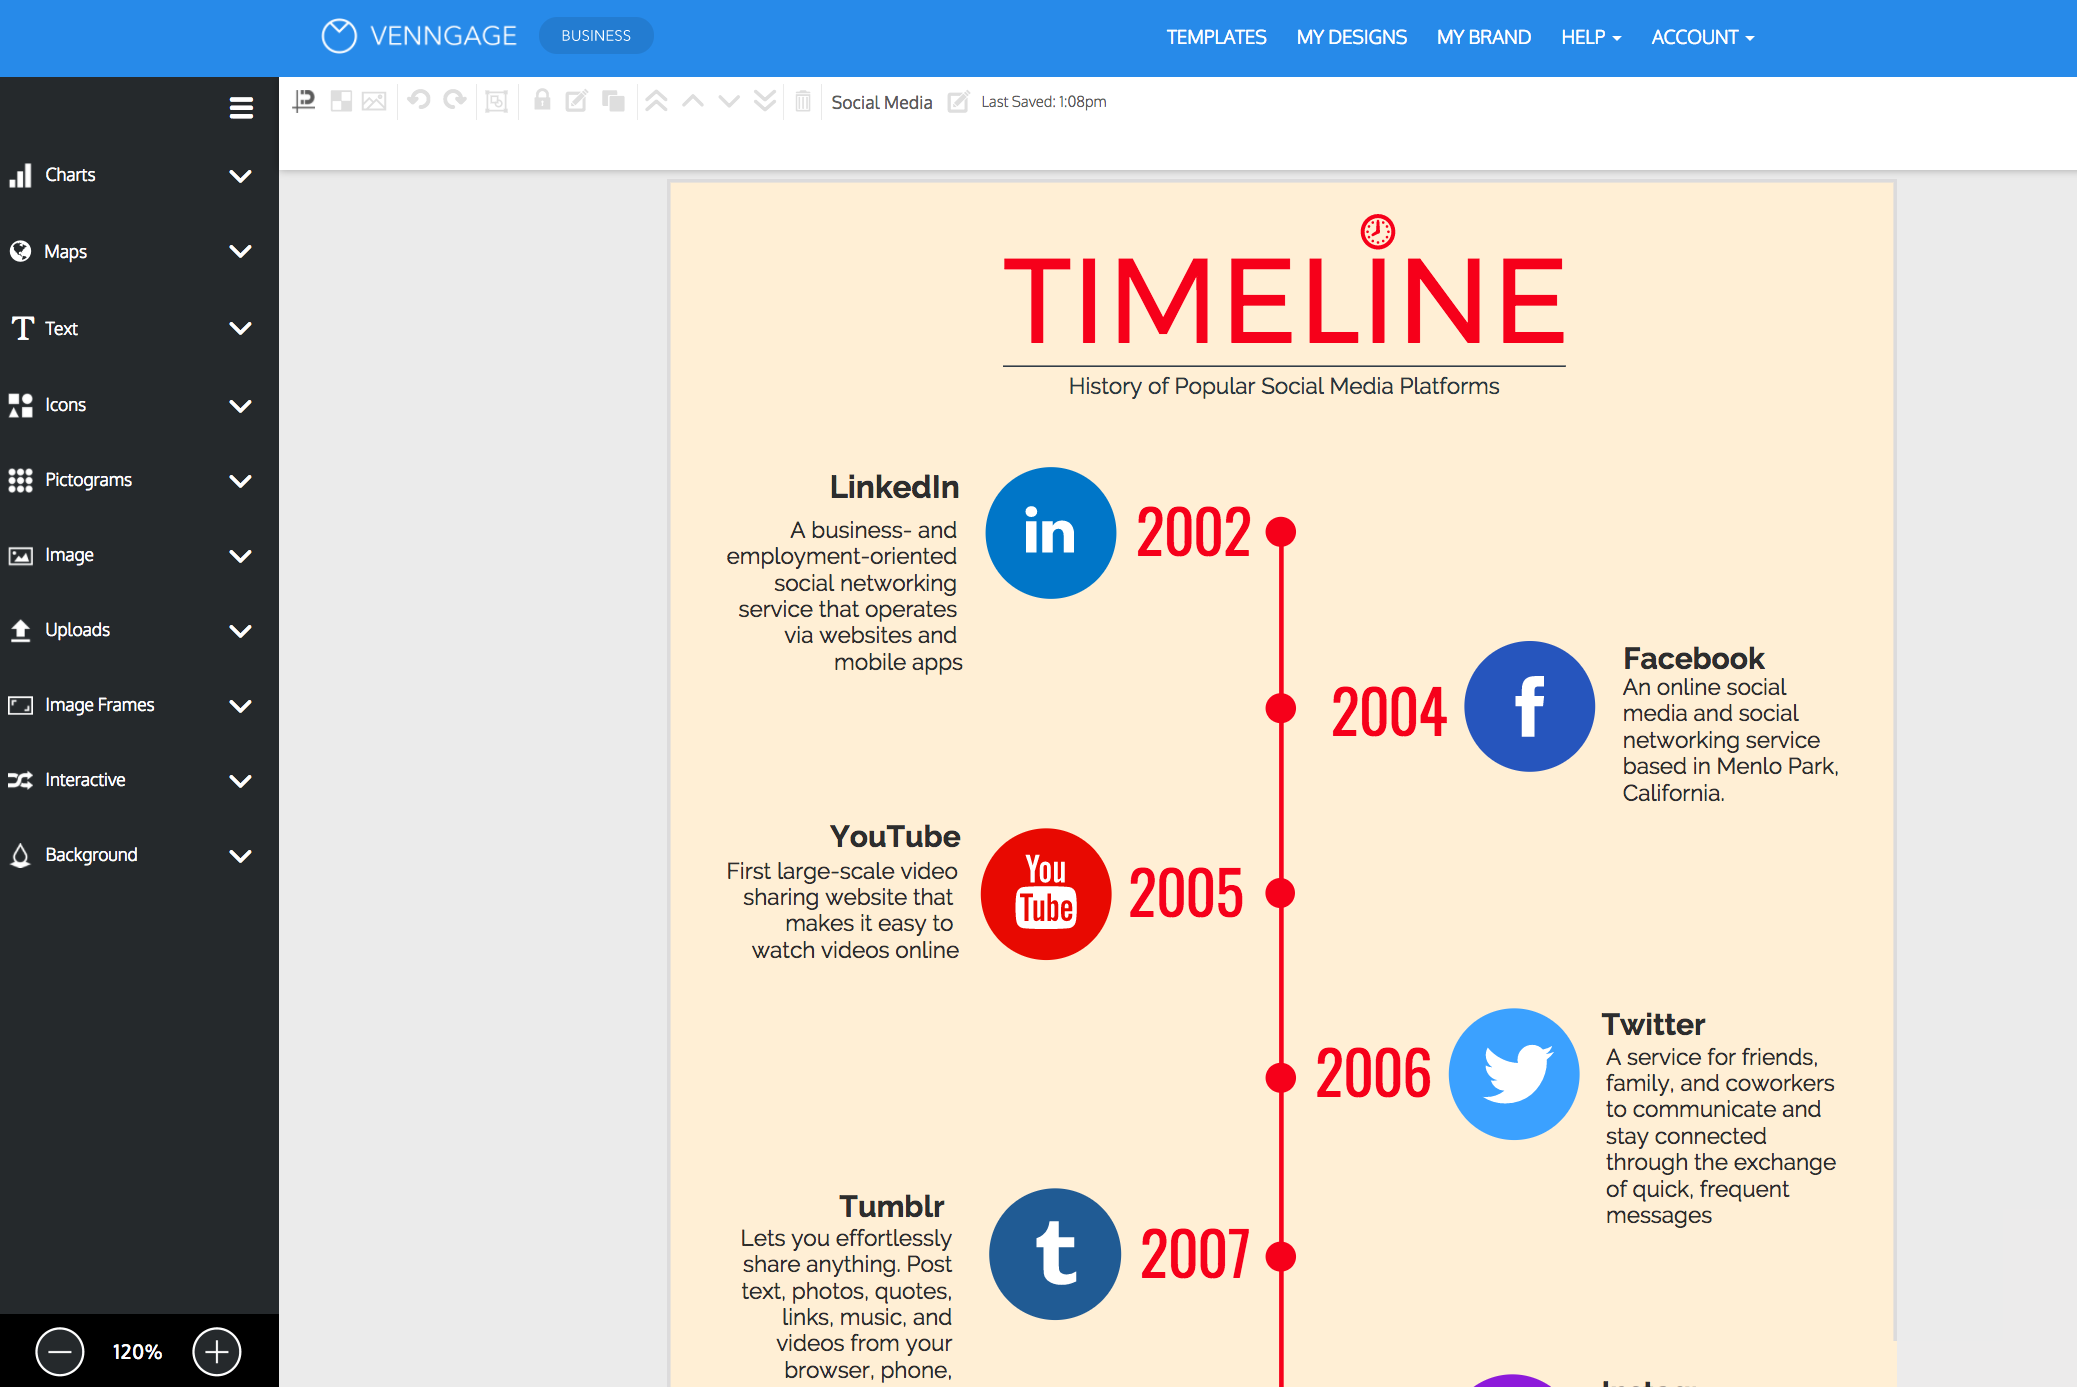 create your timeline infographic - venngage